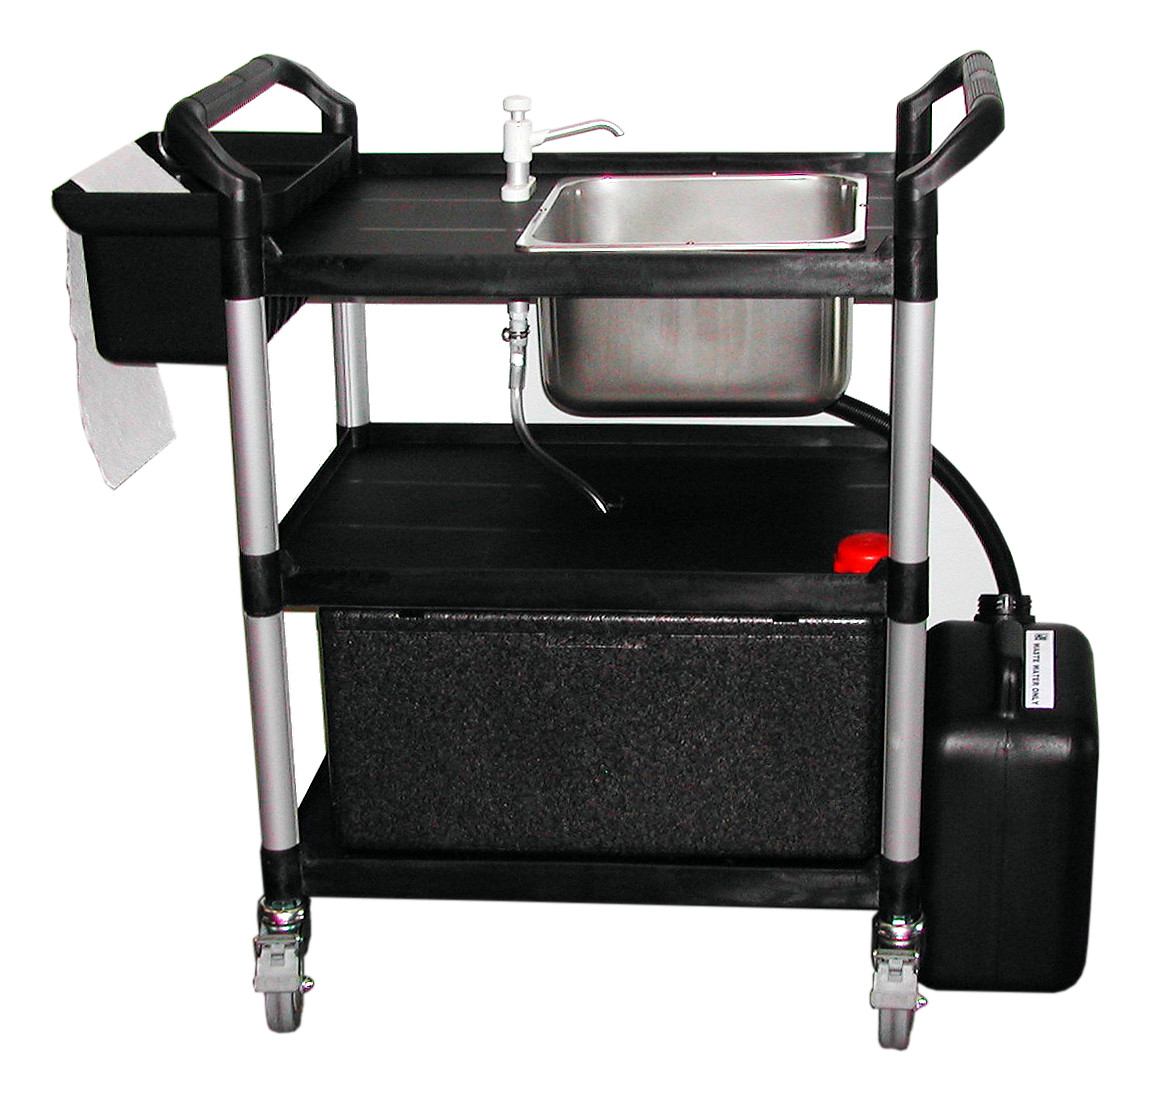 Portable Hot Washing Up Unit 23 lts (sinks) Mobile